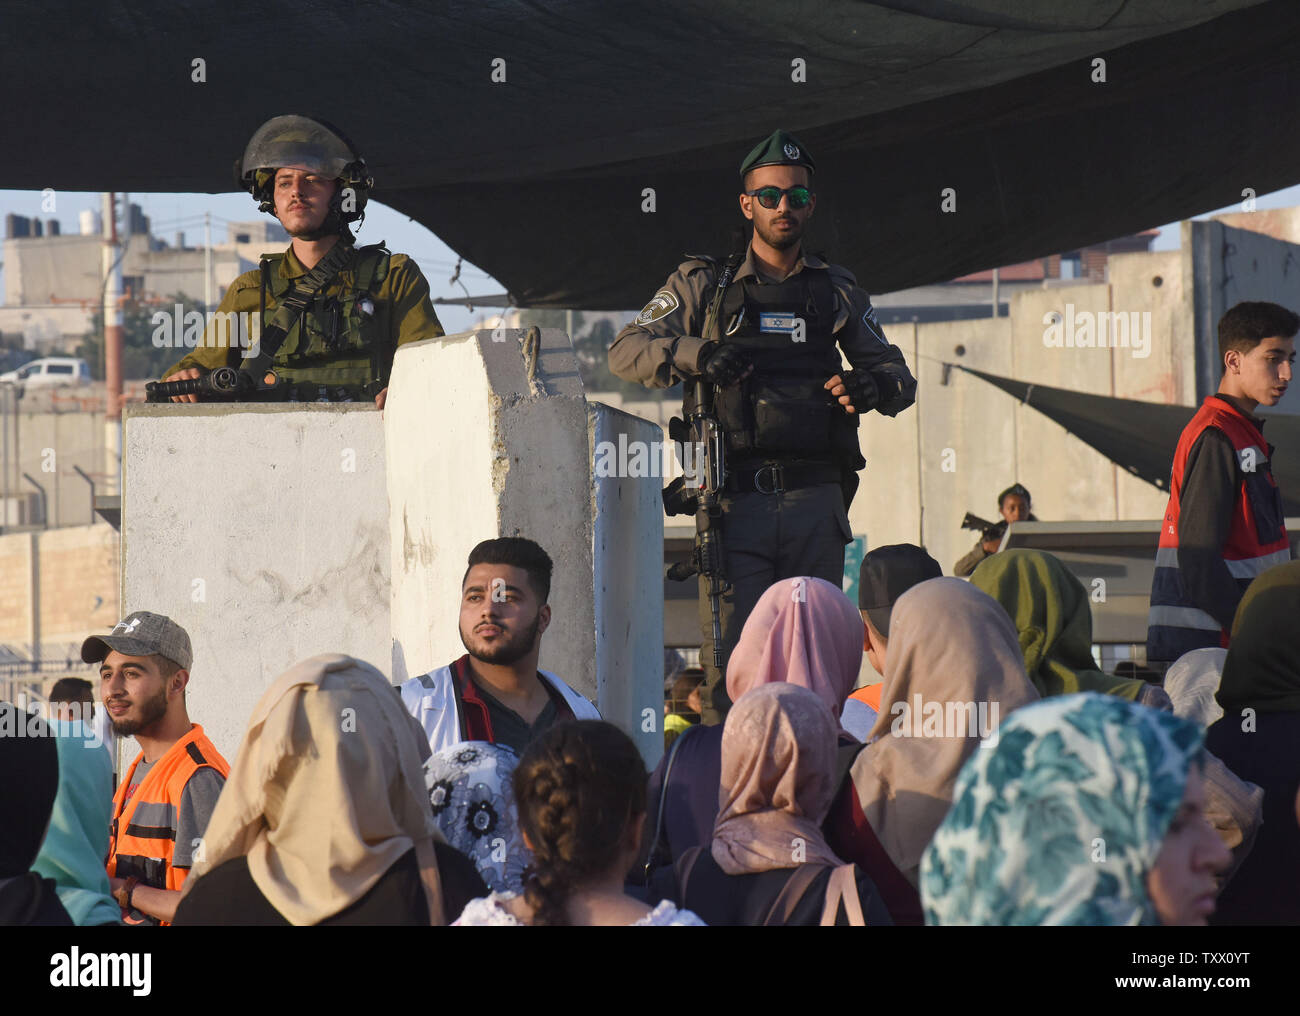 Israeli security forces guard Palestinians waiting to cross the Qalandiya checkpoint, West Bank, from Ramallah to Jerusalem, to pray at the Al-Aqsa Mosque on the last Friday of the Muslim holy month of Ramadan, June 8, 2018.  Photo by Debbie Hill/UPI - Stock Image